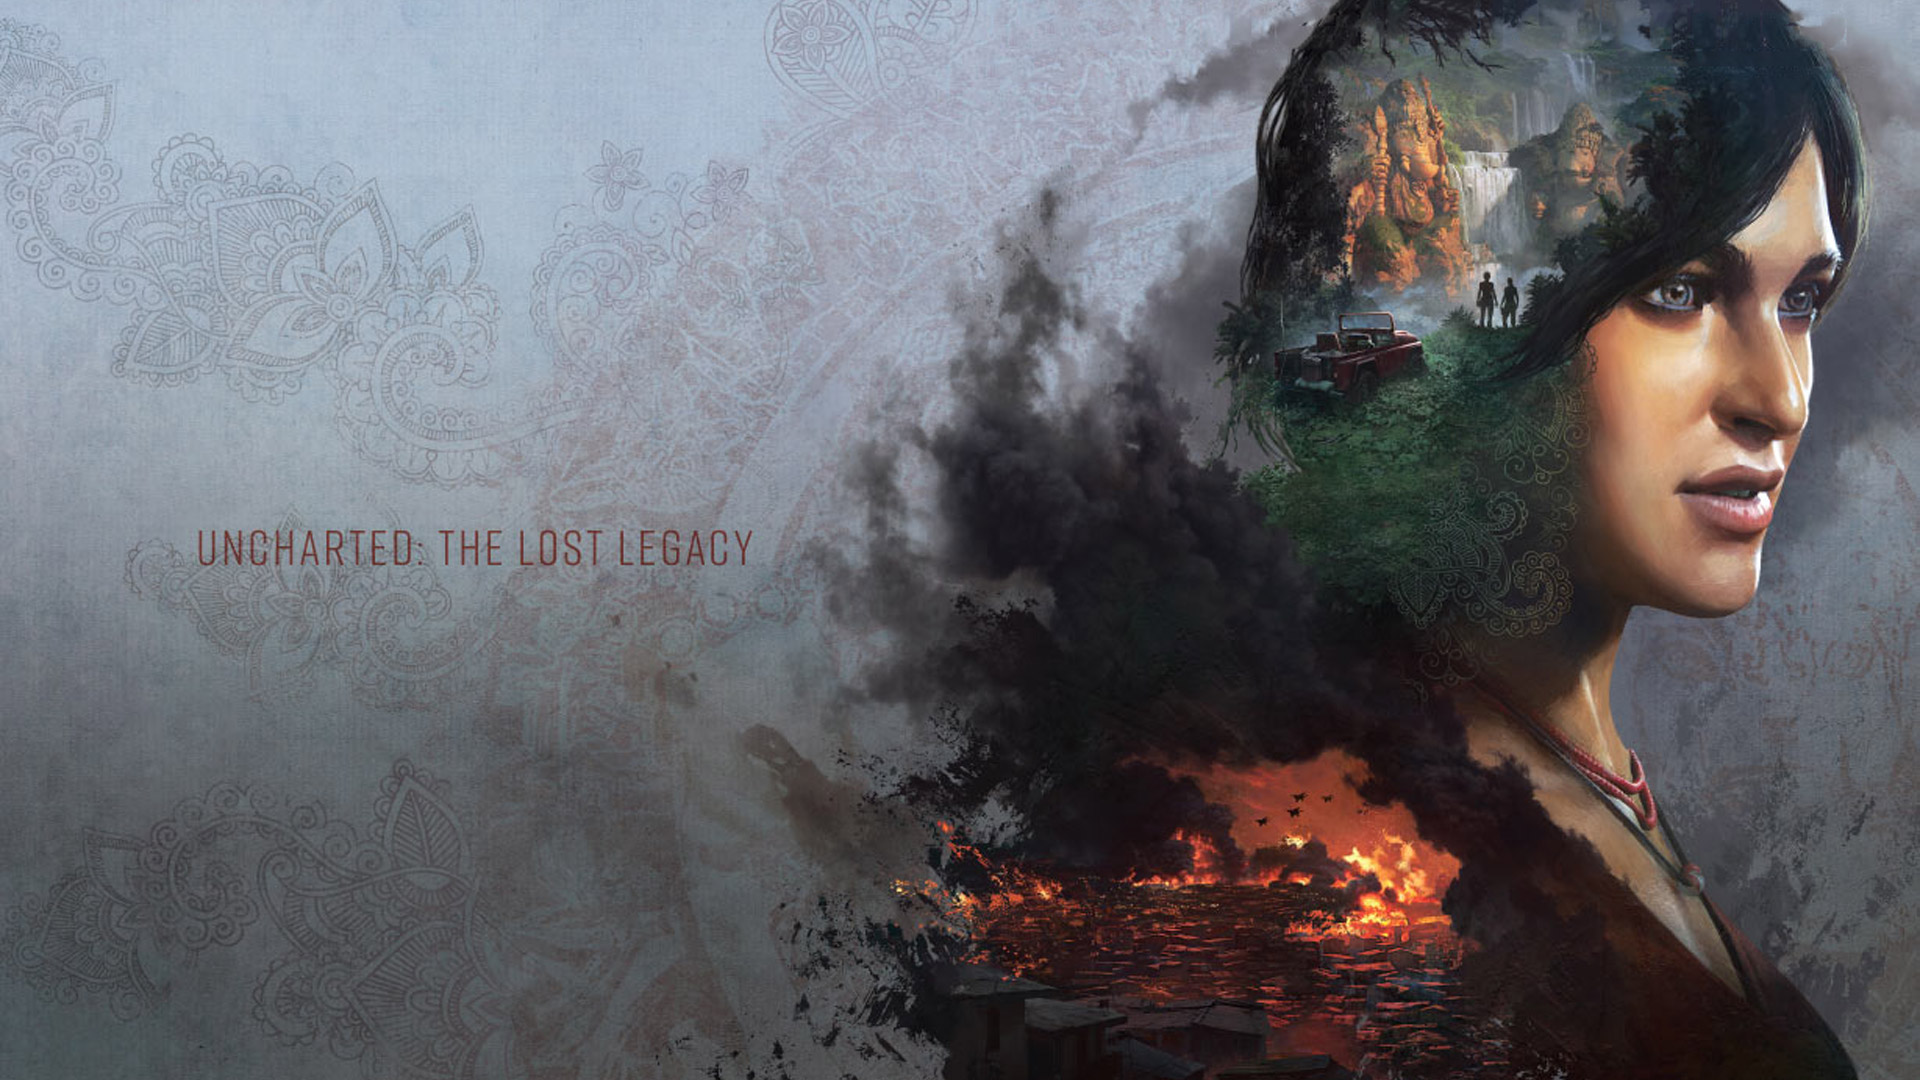 Free Uncharted: The Lost Legacy Wallpaper in 1920x1080